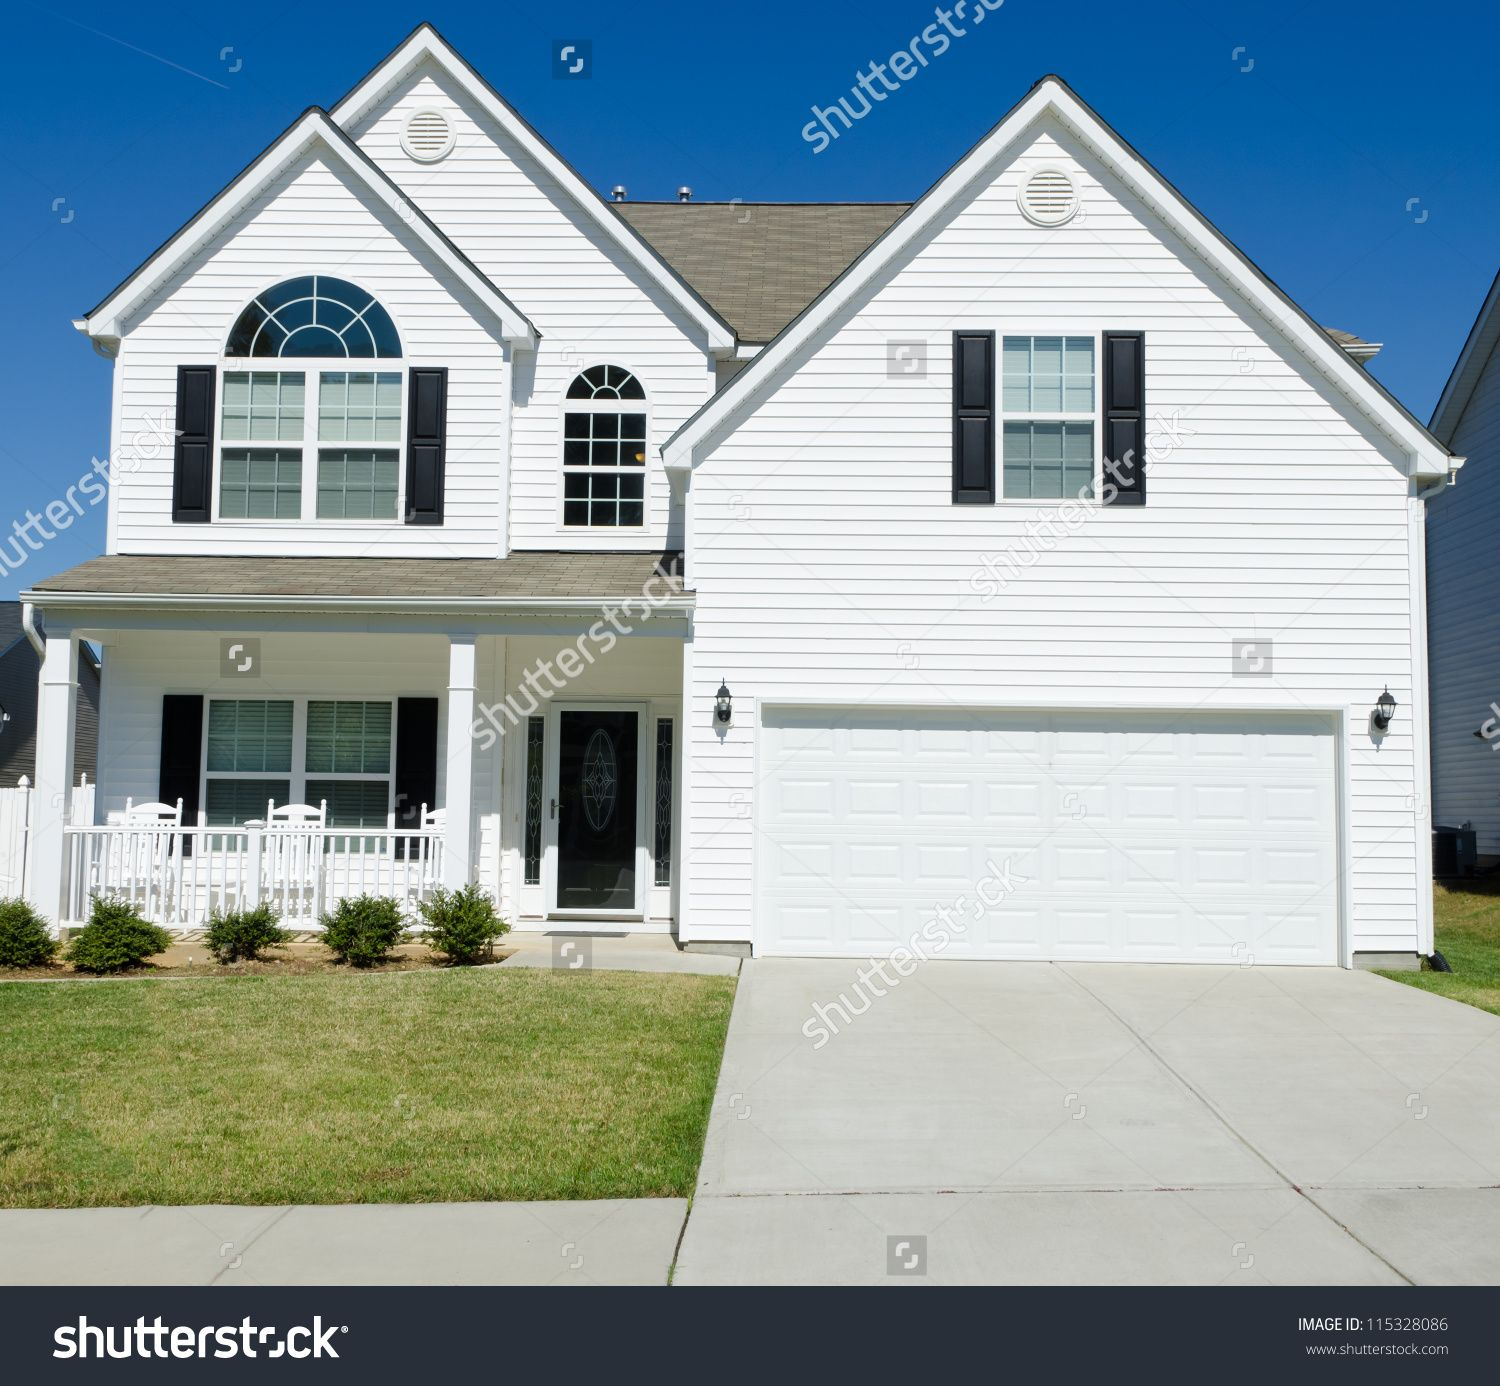 Residential House With White Vinyl Siding Exterior